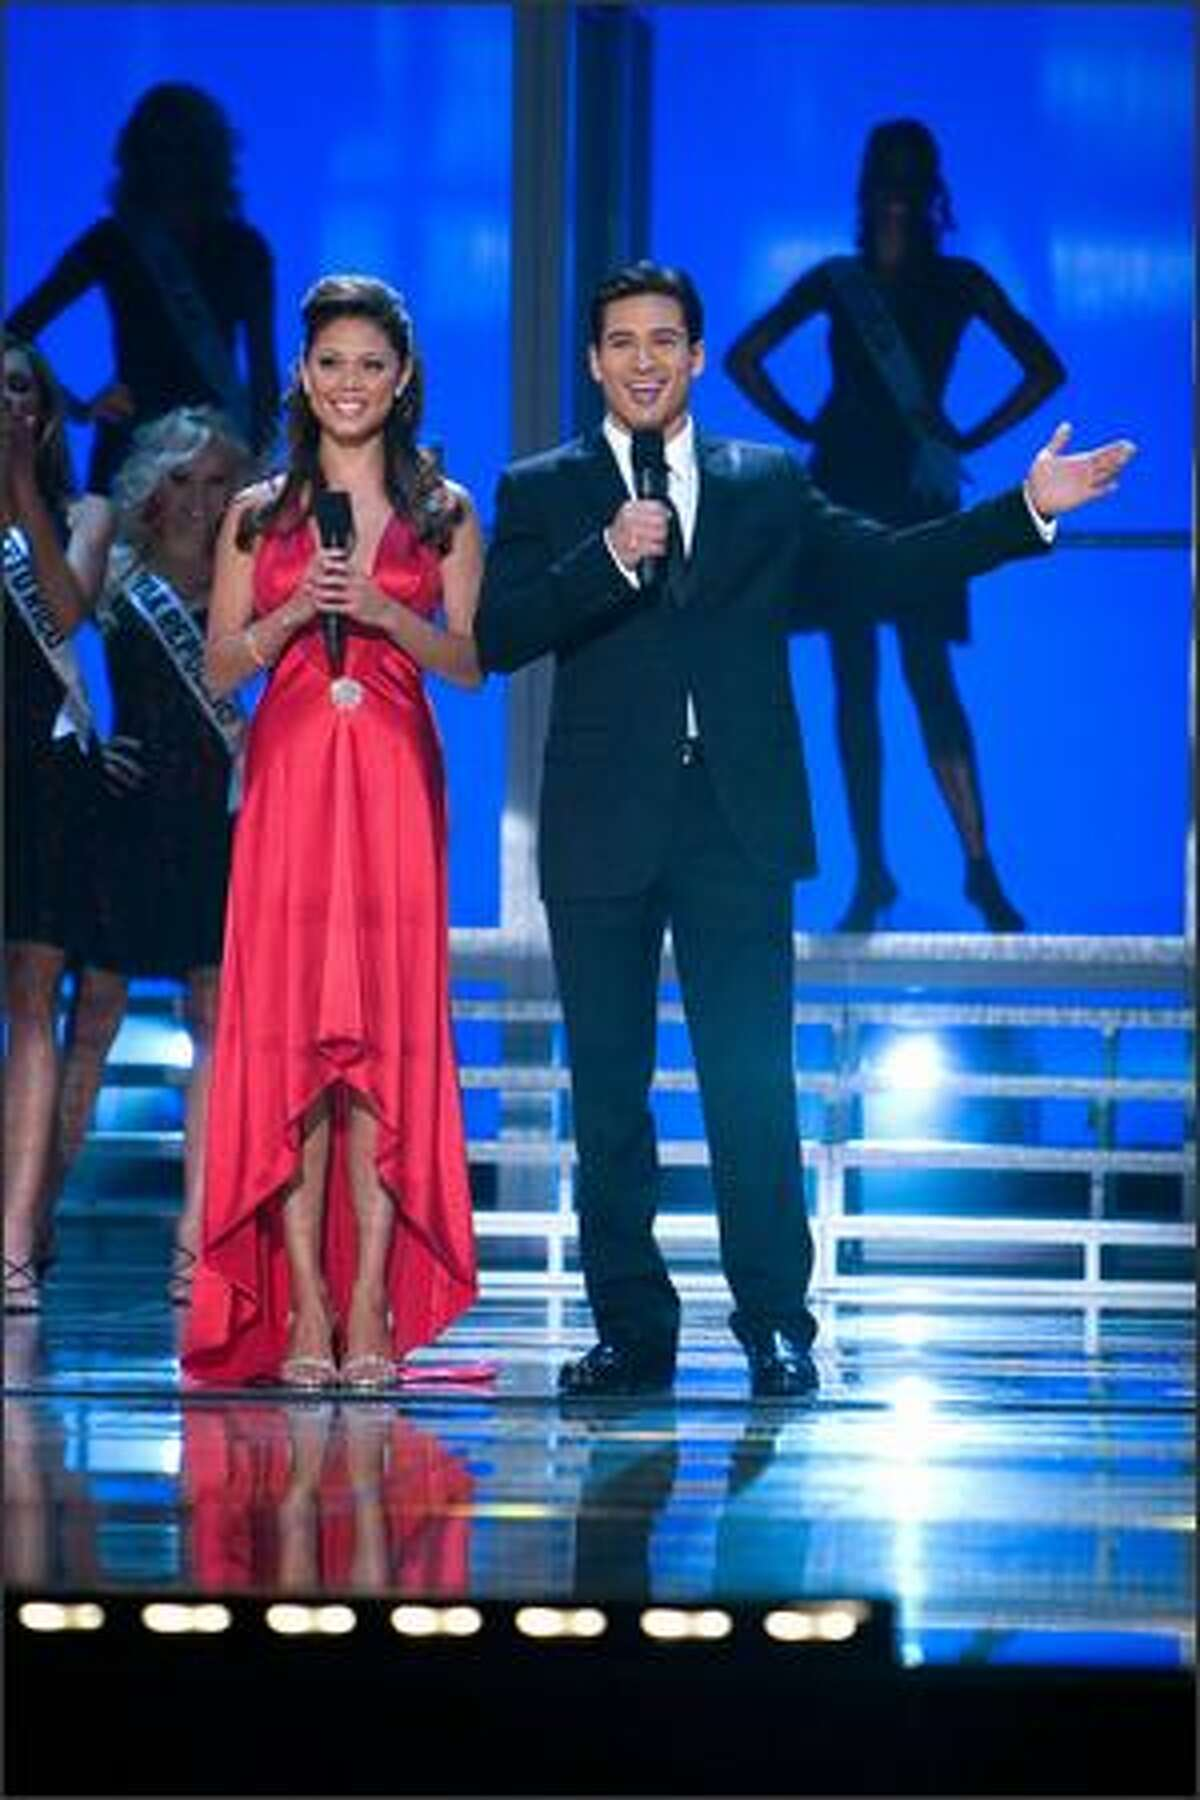 Co-hosts Vanessa Minnillo and Mario Lopez open the NBC broadcast of the 56th annual Miss Universe competition from the Auditorio Nacional in Mexico City.